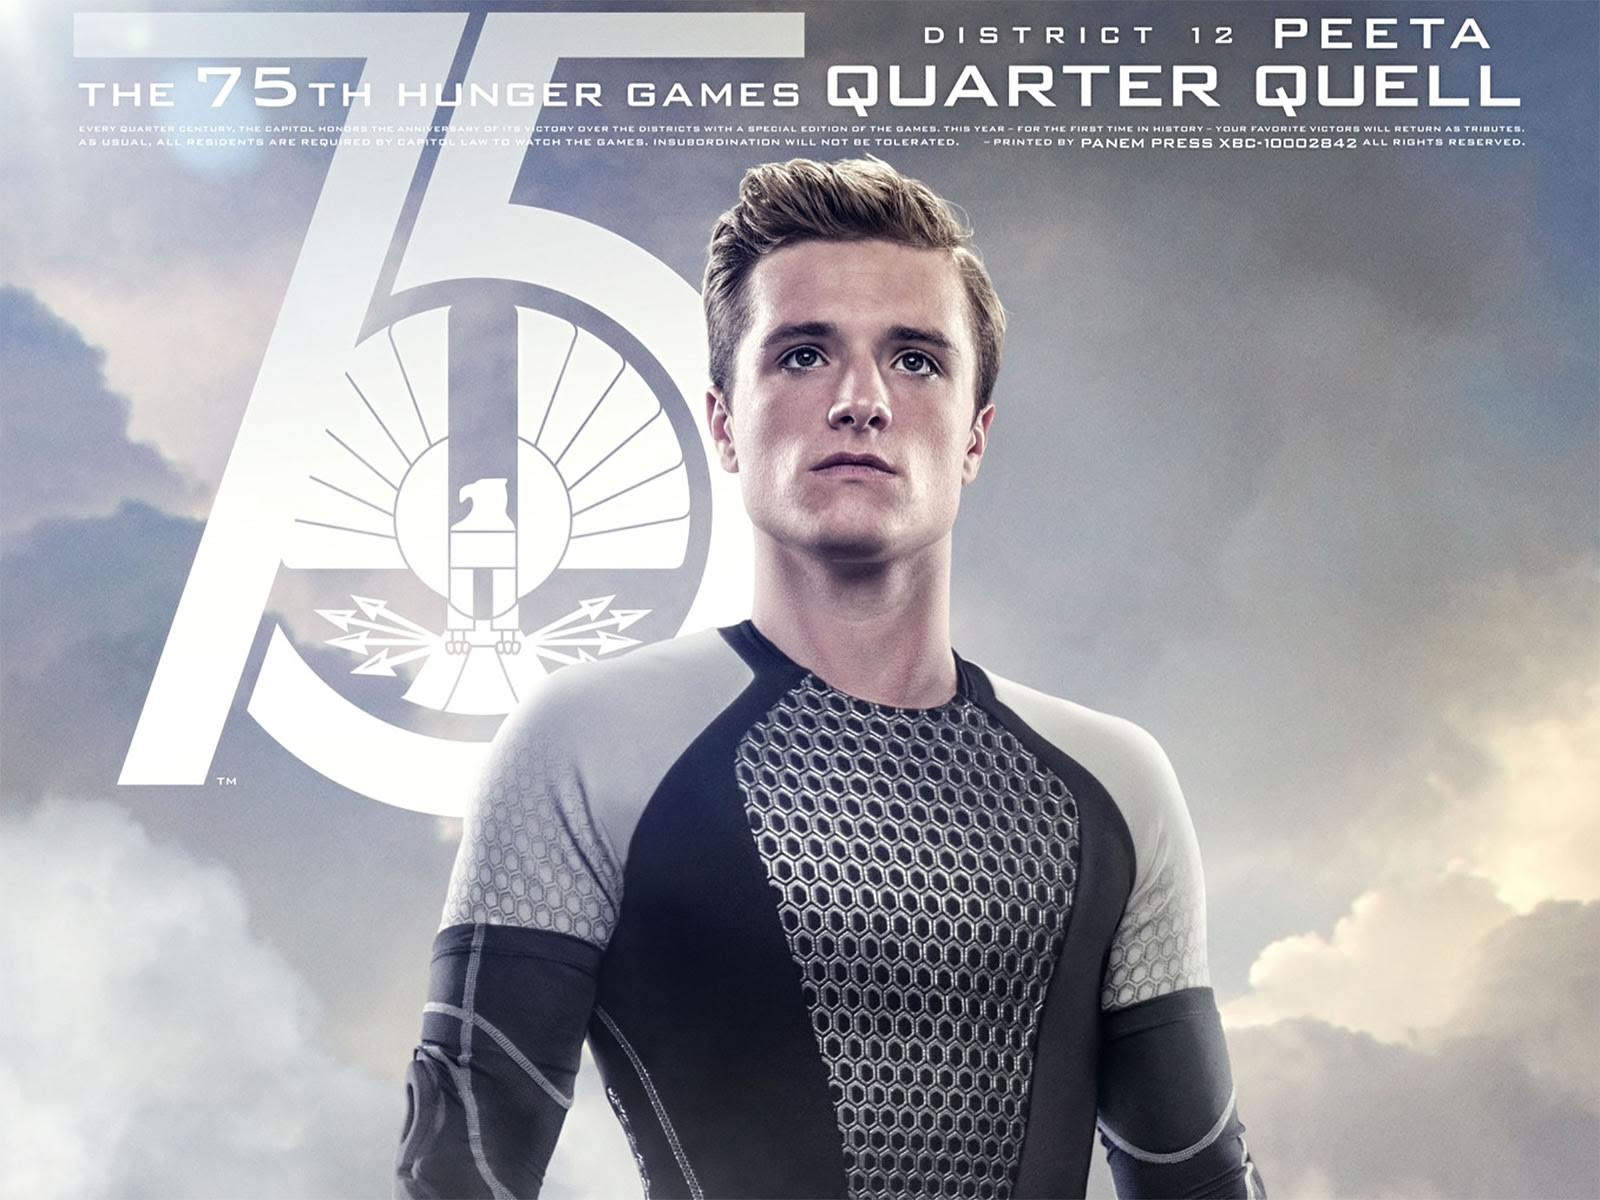 http://wallpapers.org.es/wp-content/uploads/2013/09/wallpapers-juegos-del-hambre-en-llamas-peeta.jpg